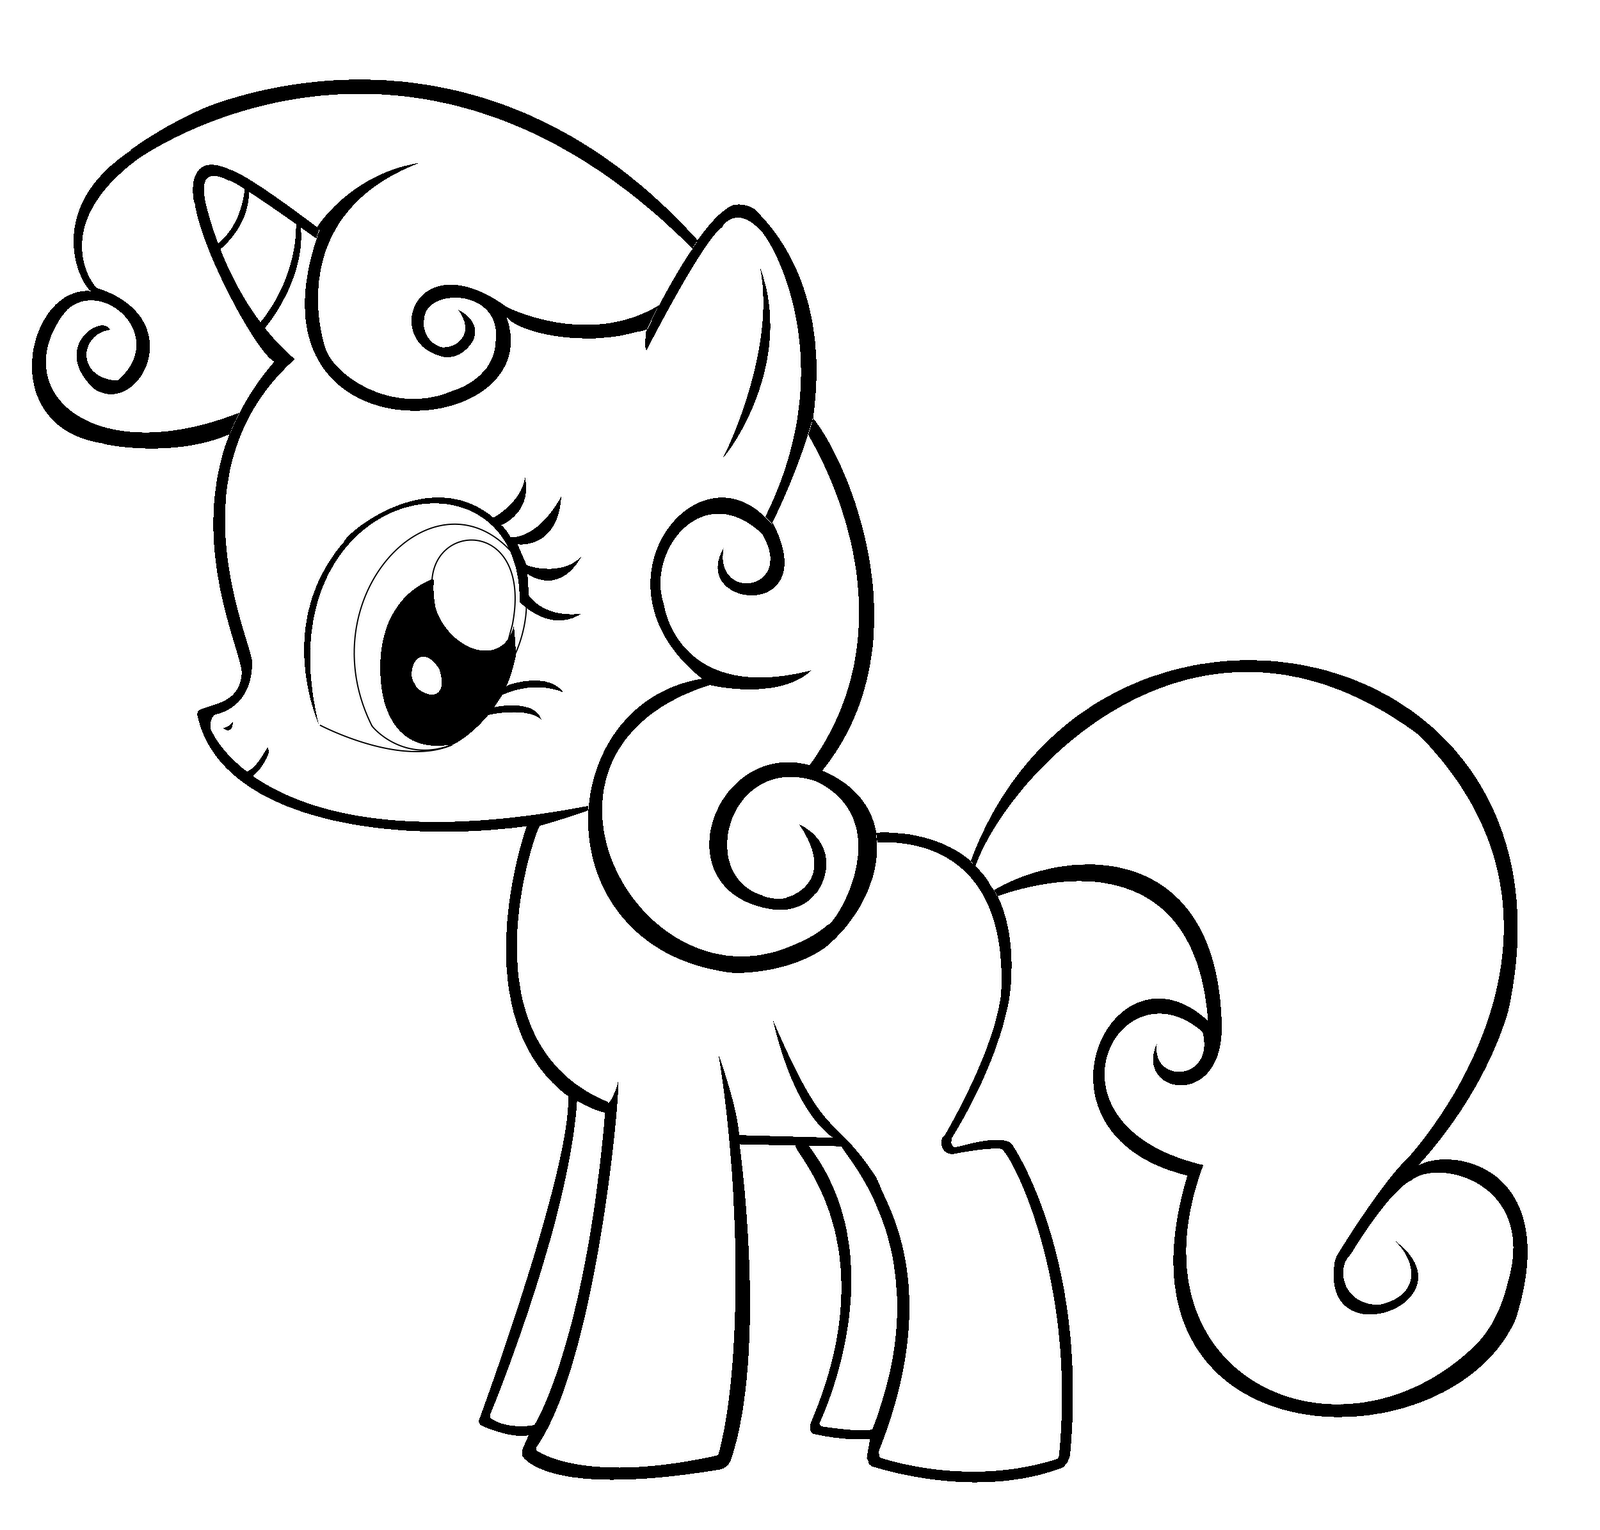 Free printable my little pony coloring pages for kids for Cute coloring book pages